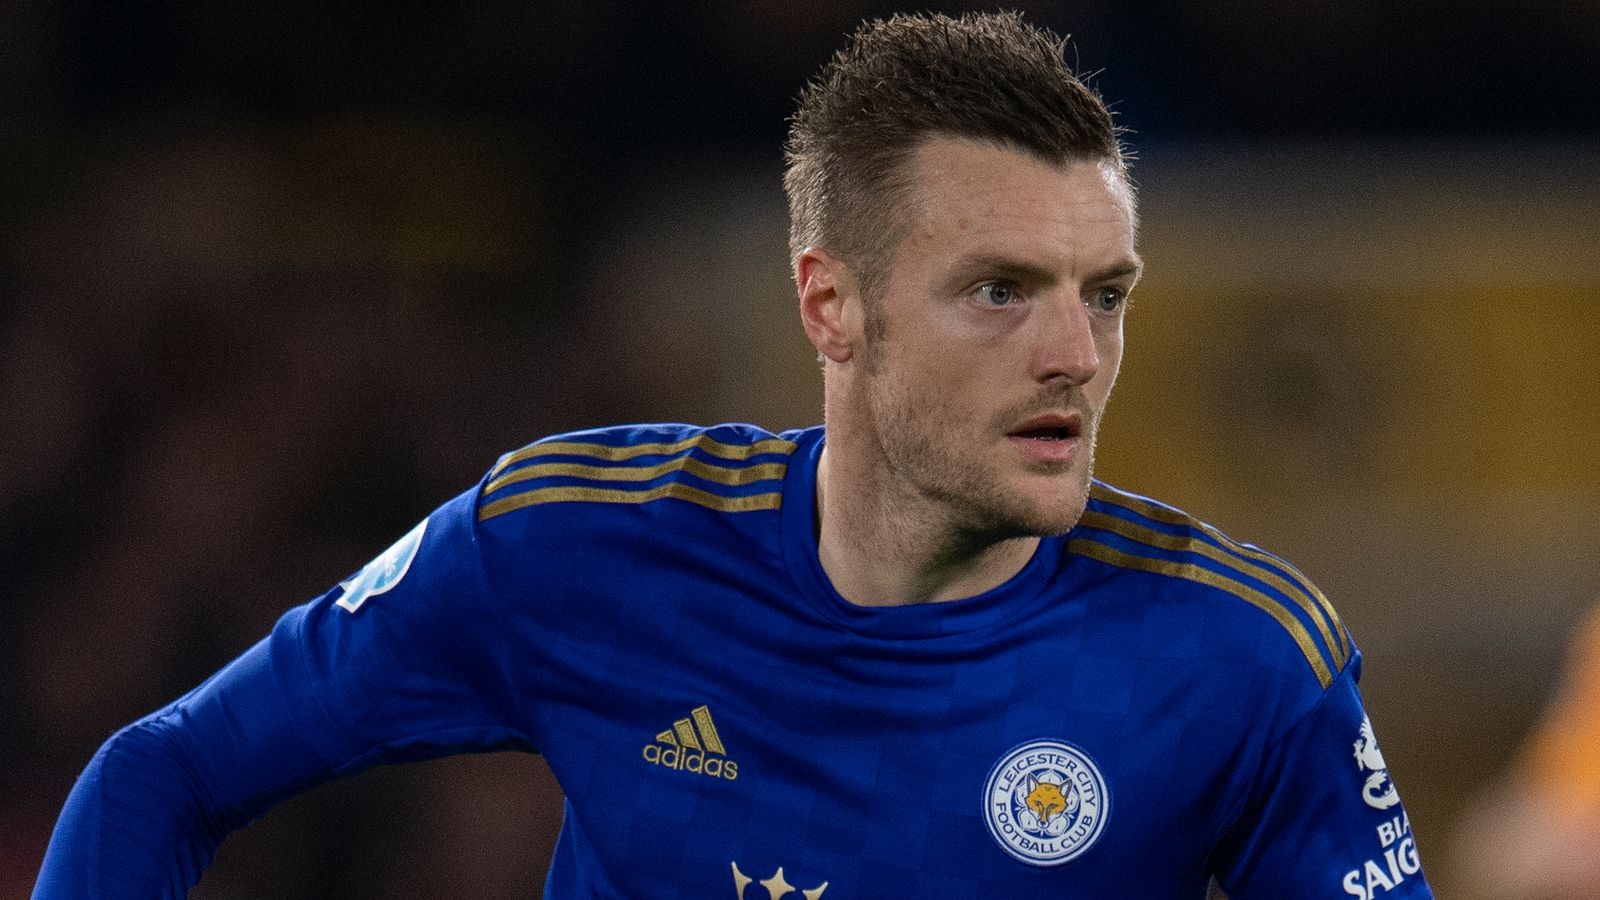 Exclusive: Jamie Vardy, Joe Gomez and Tyrone Mings among Premier League stars to switch agents after takeover